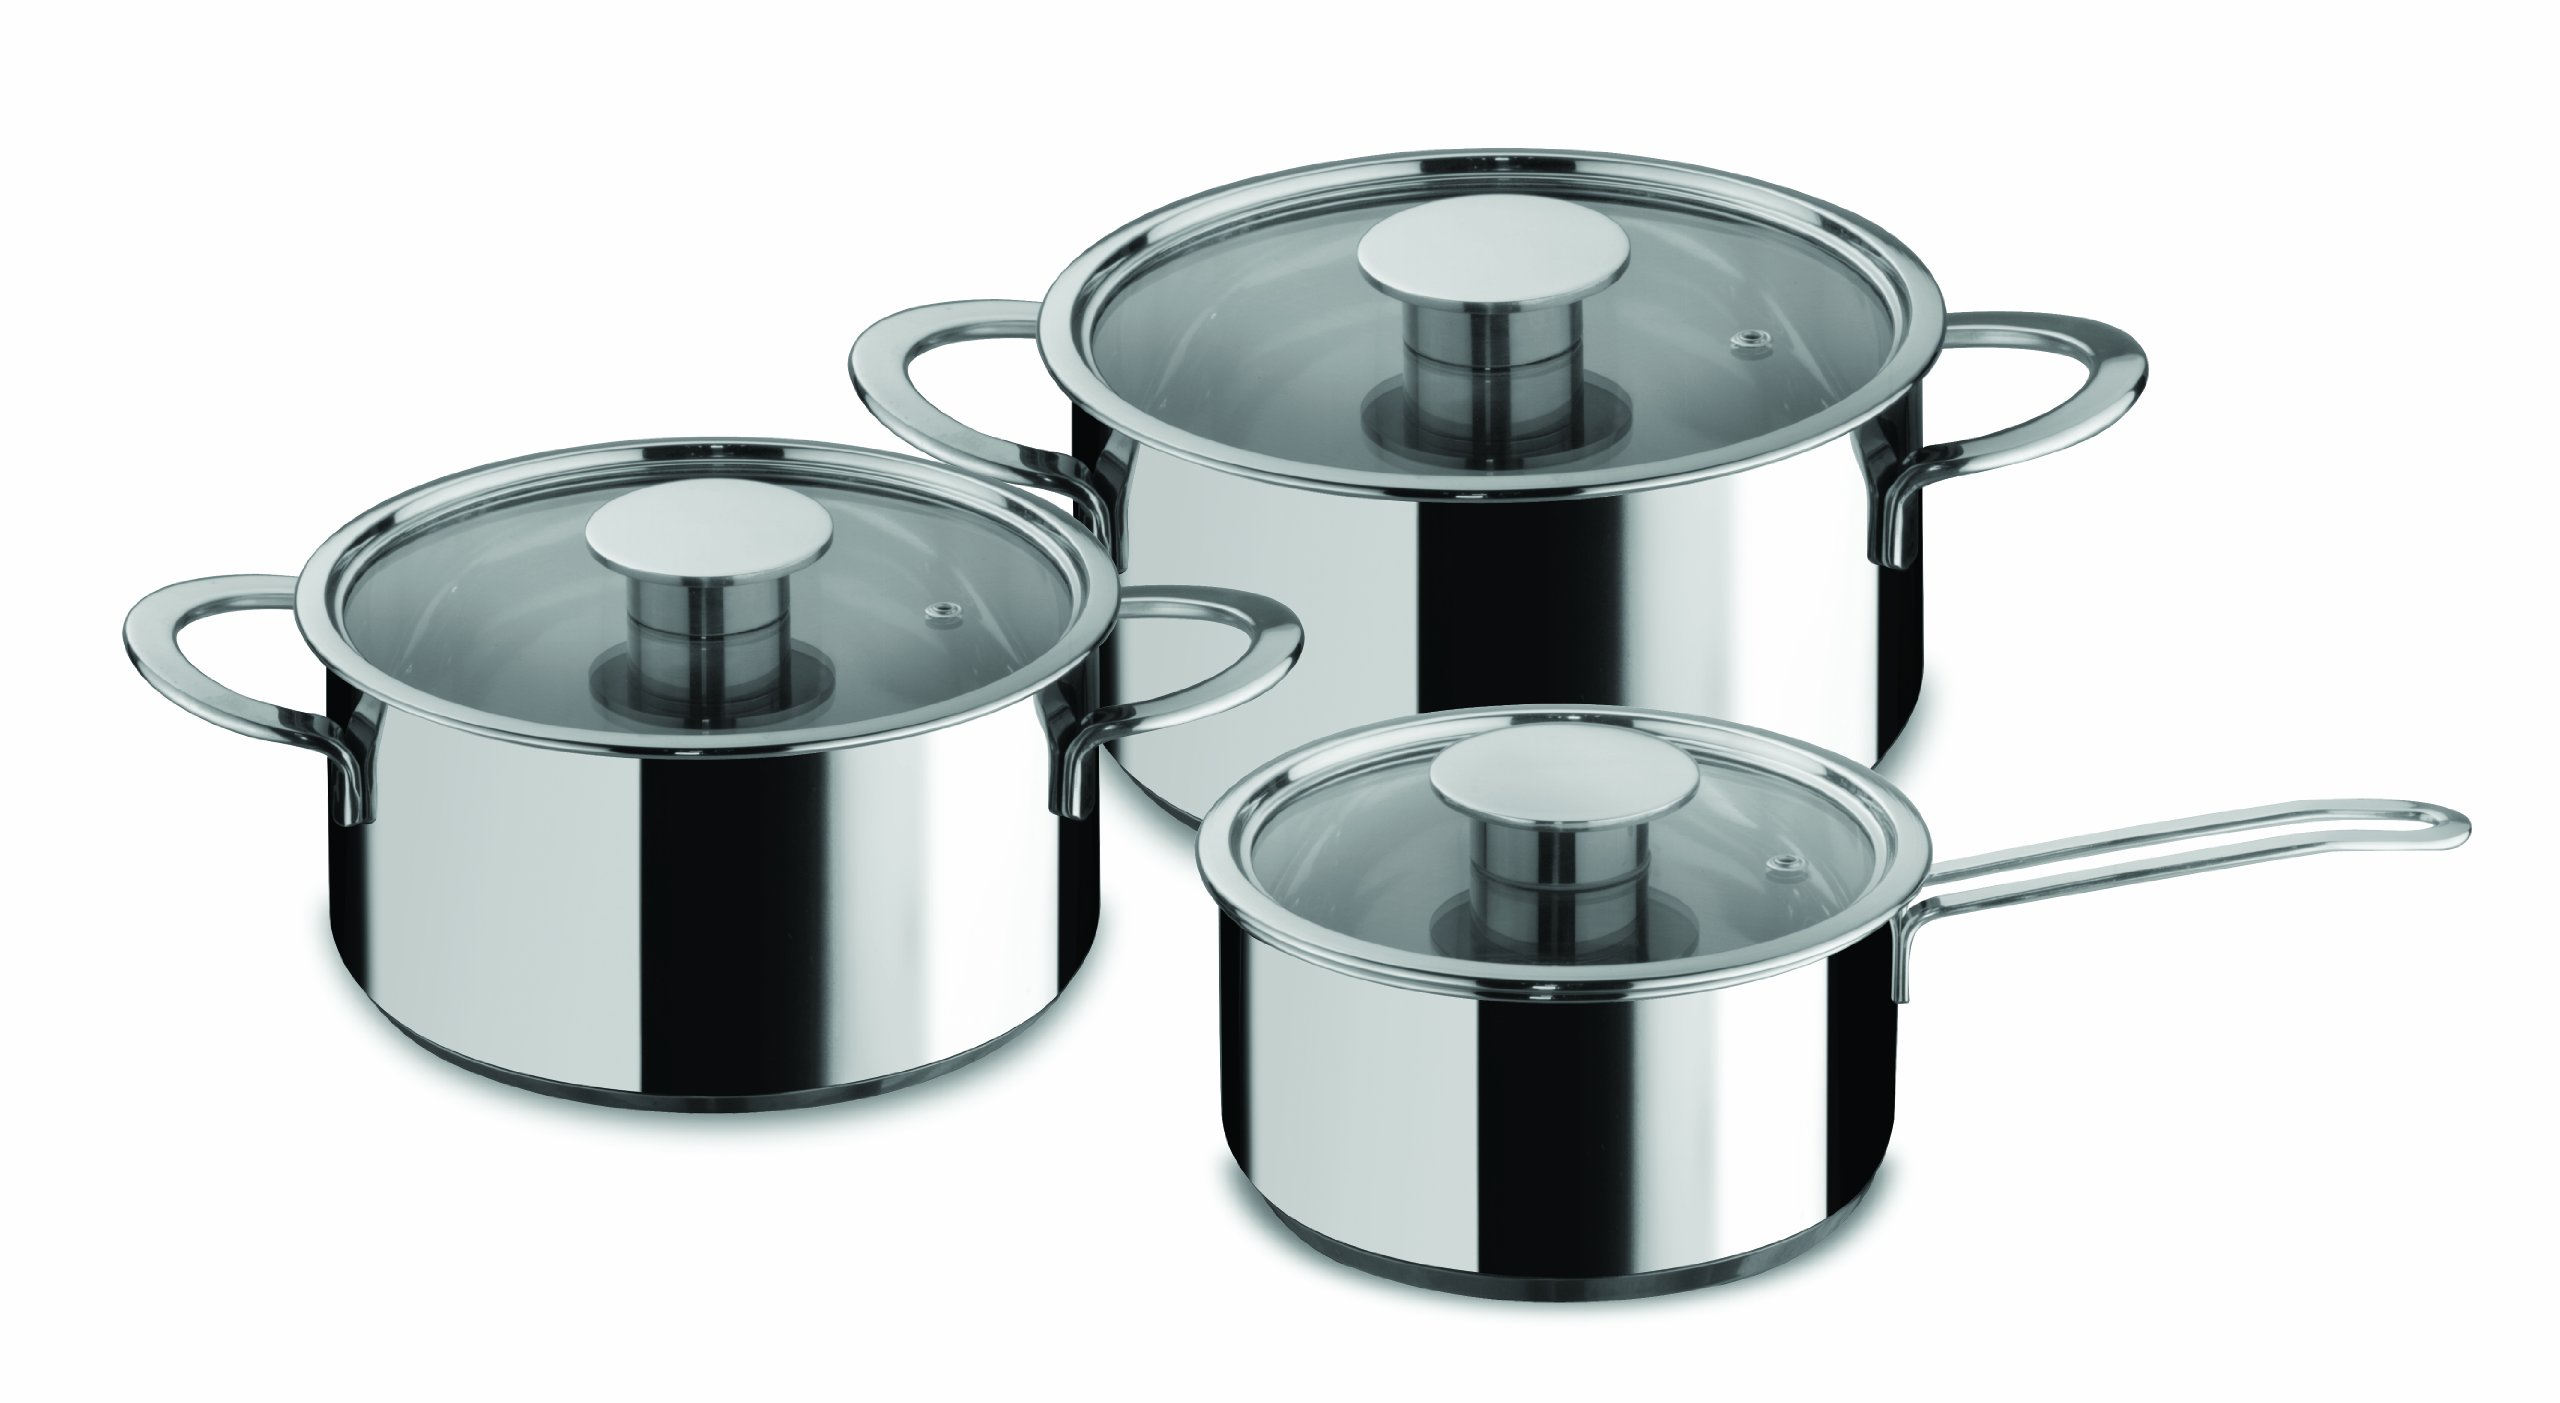 Mepra Gourmet 6-Piece Everyday Cookware Set by MEPRA